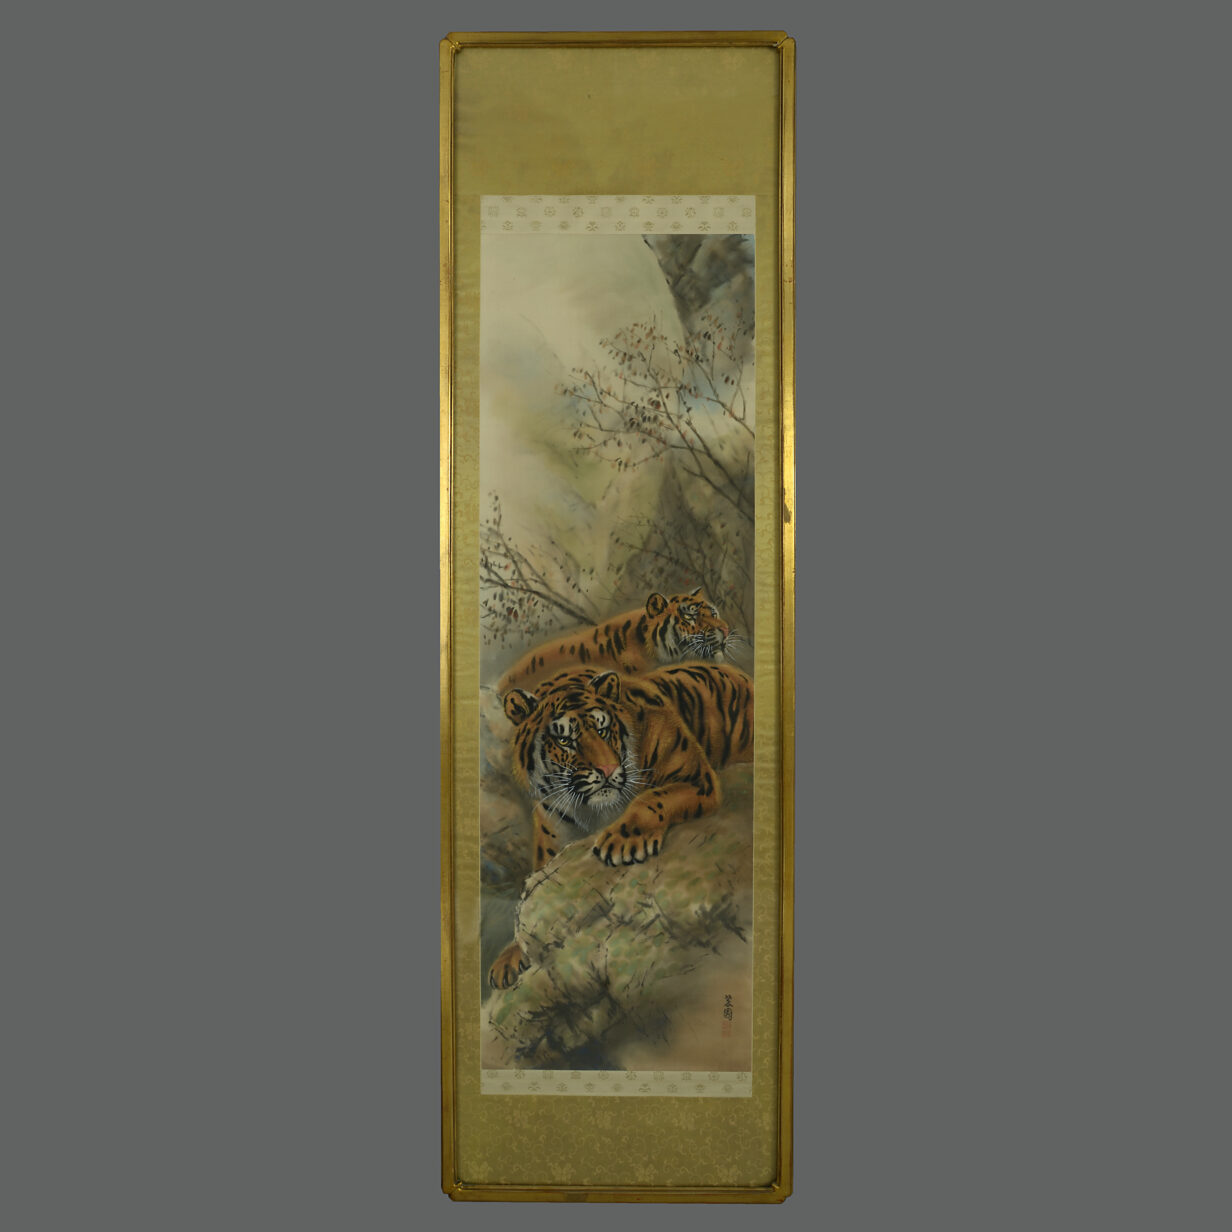 4 Chinese Tiger Scroll Pictures